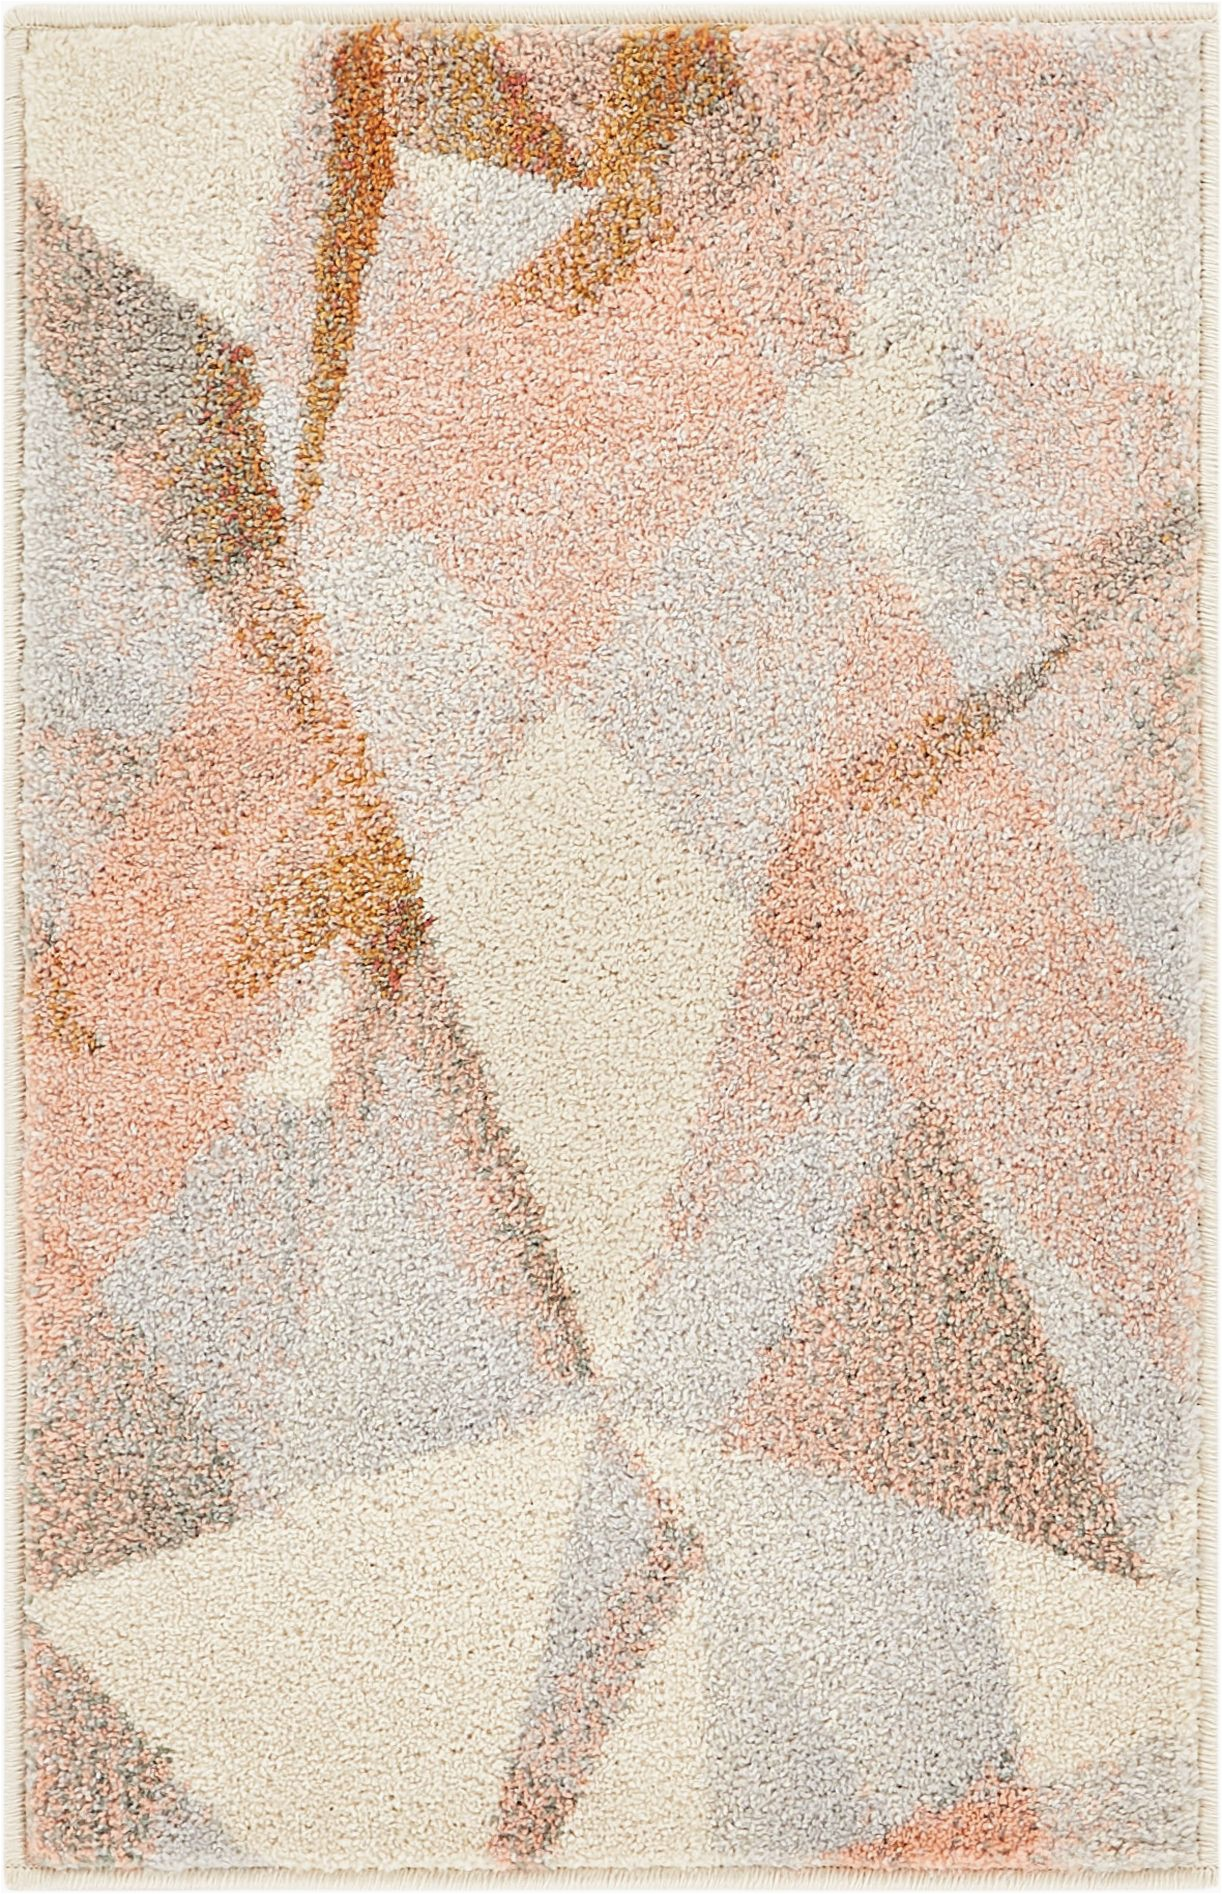 """Blush and Gold area Rug Well Woven Barra Blush Pink Multi Modern Geometric Triangle Pattern Abstract area Rug 20x31 20"""" X 31"""" Mat Contemporary Thick soft Plush"""